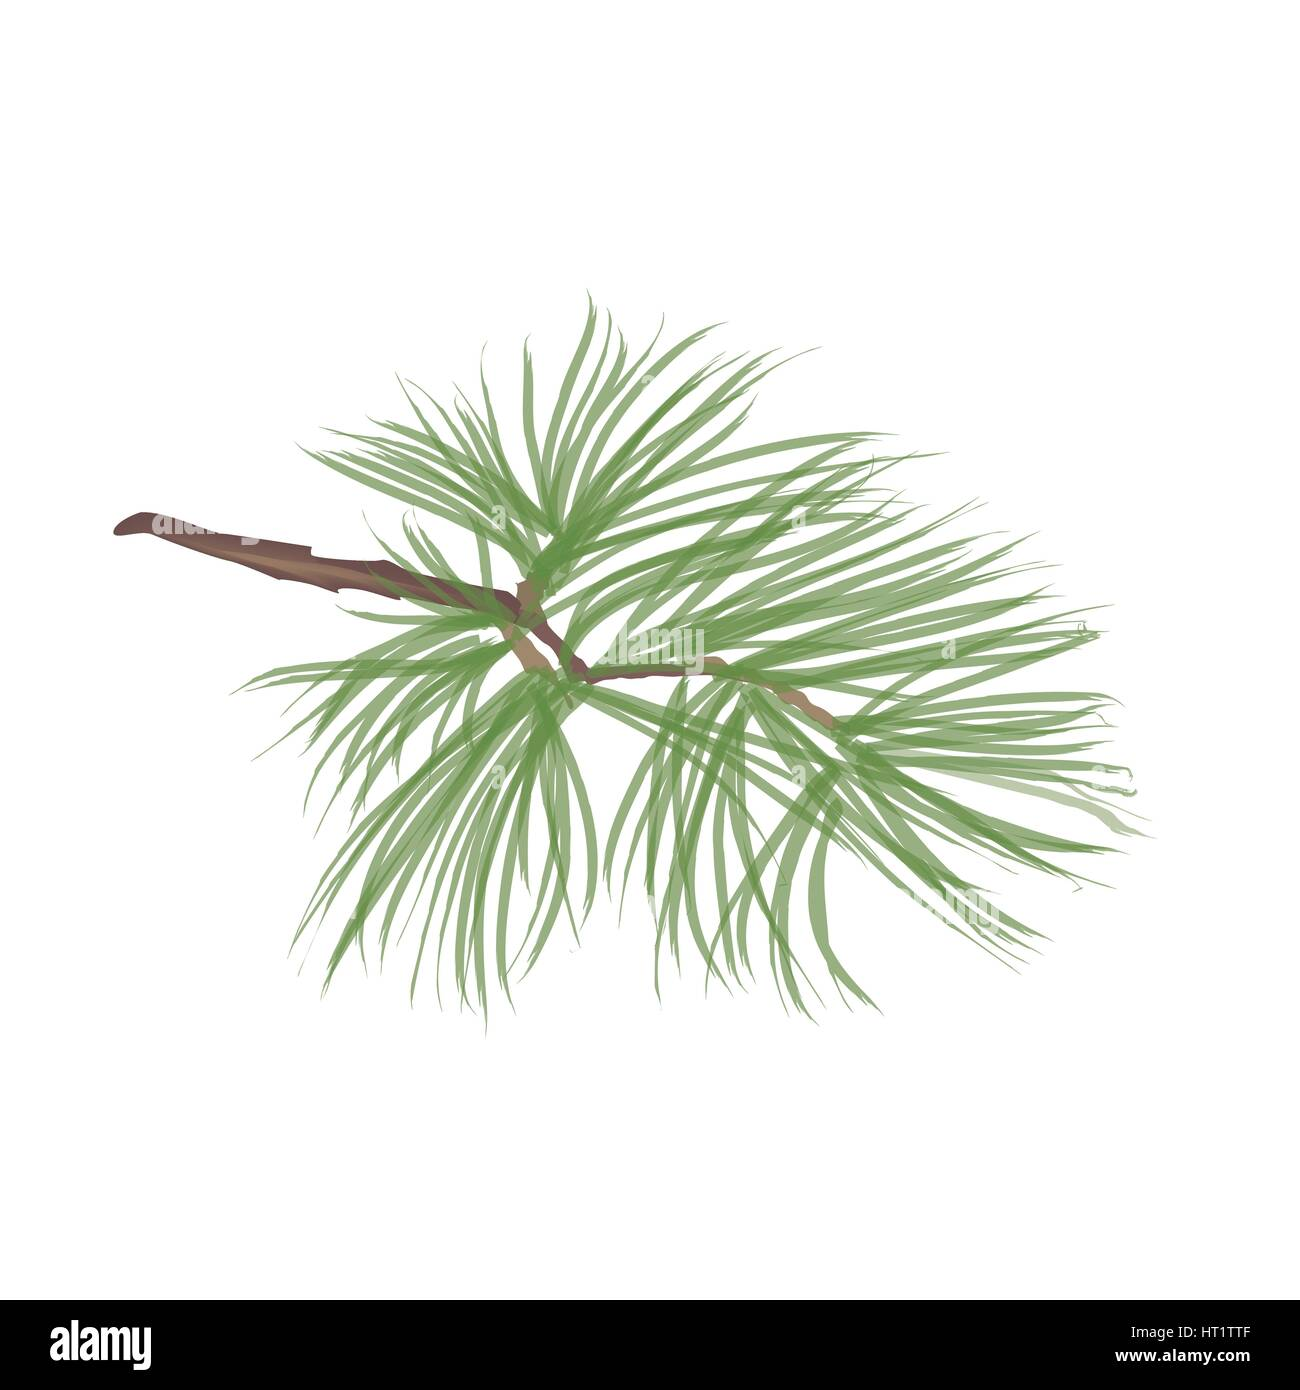 Pinecone. Pine tree branch isolated. Floral evergreen decor - Stock Image